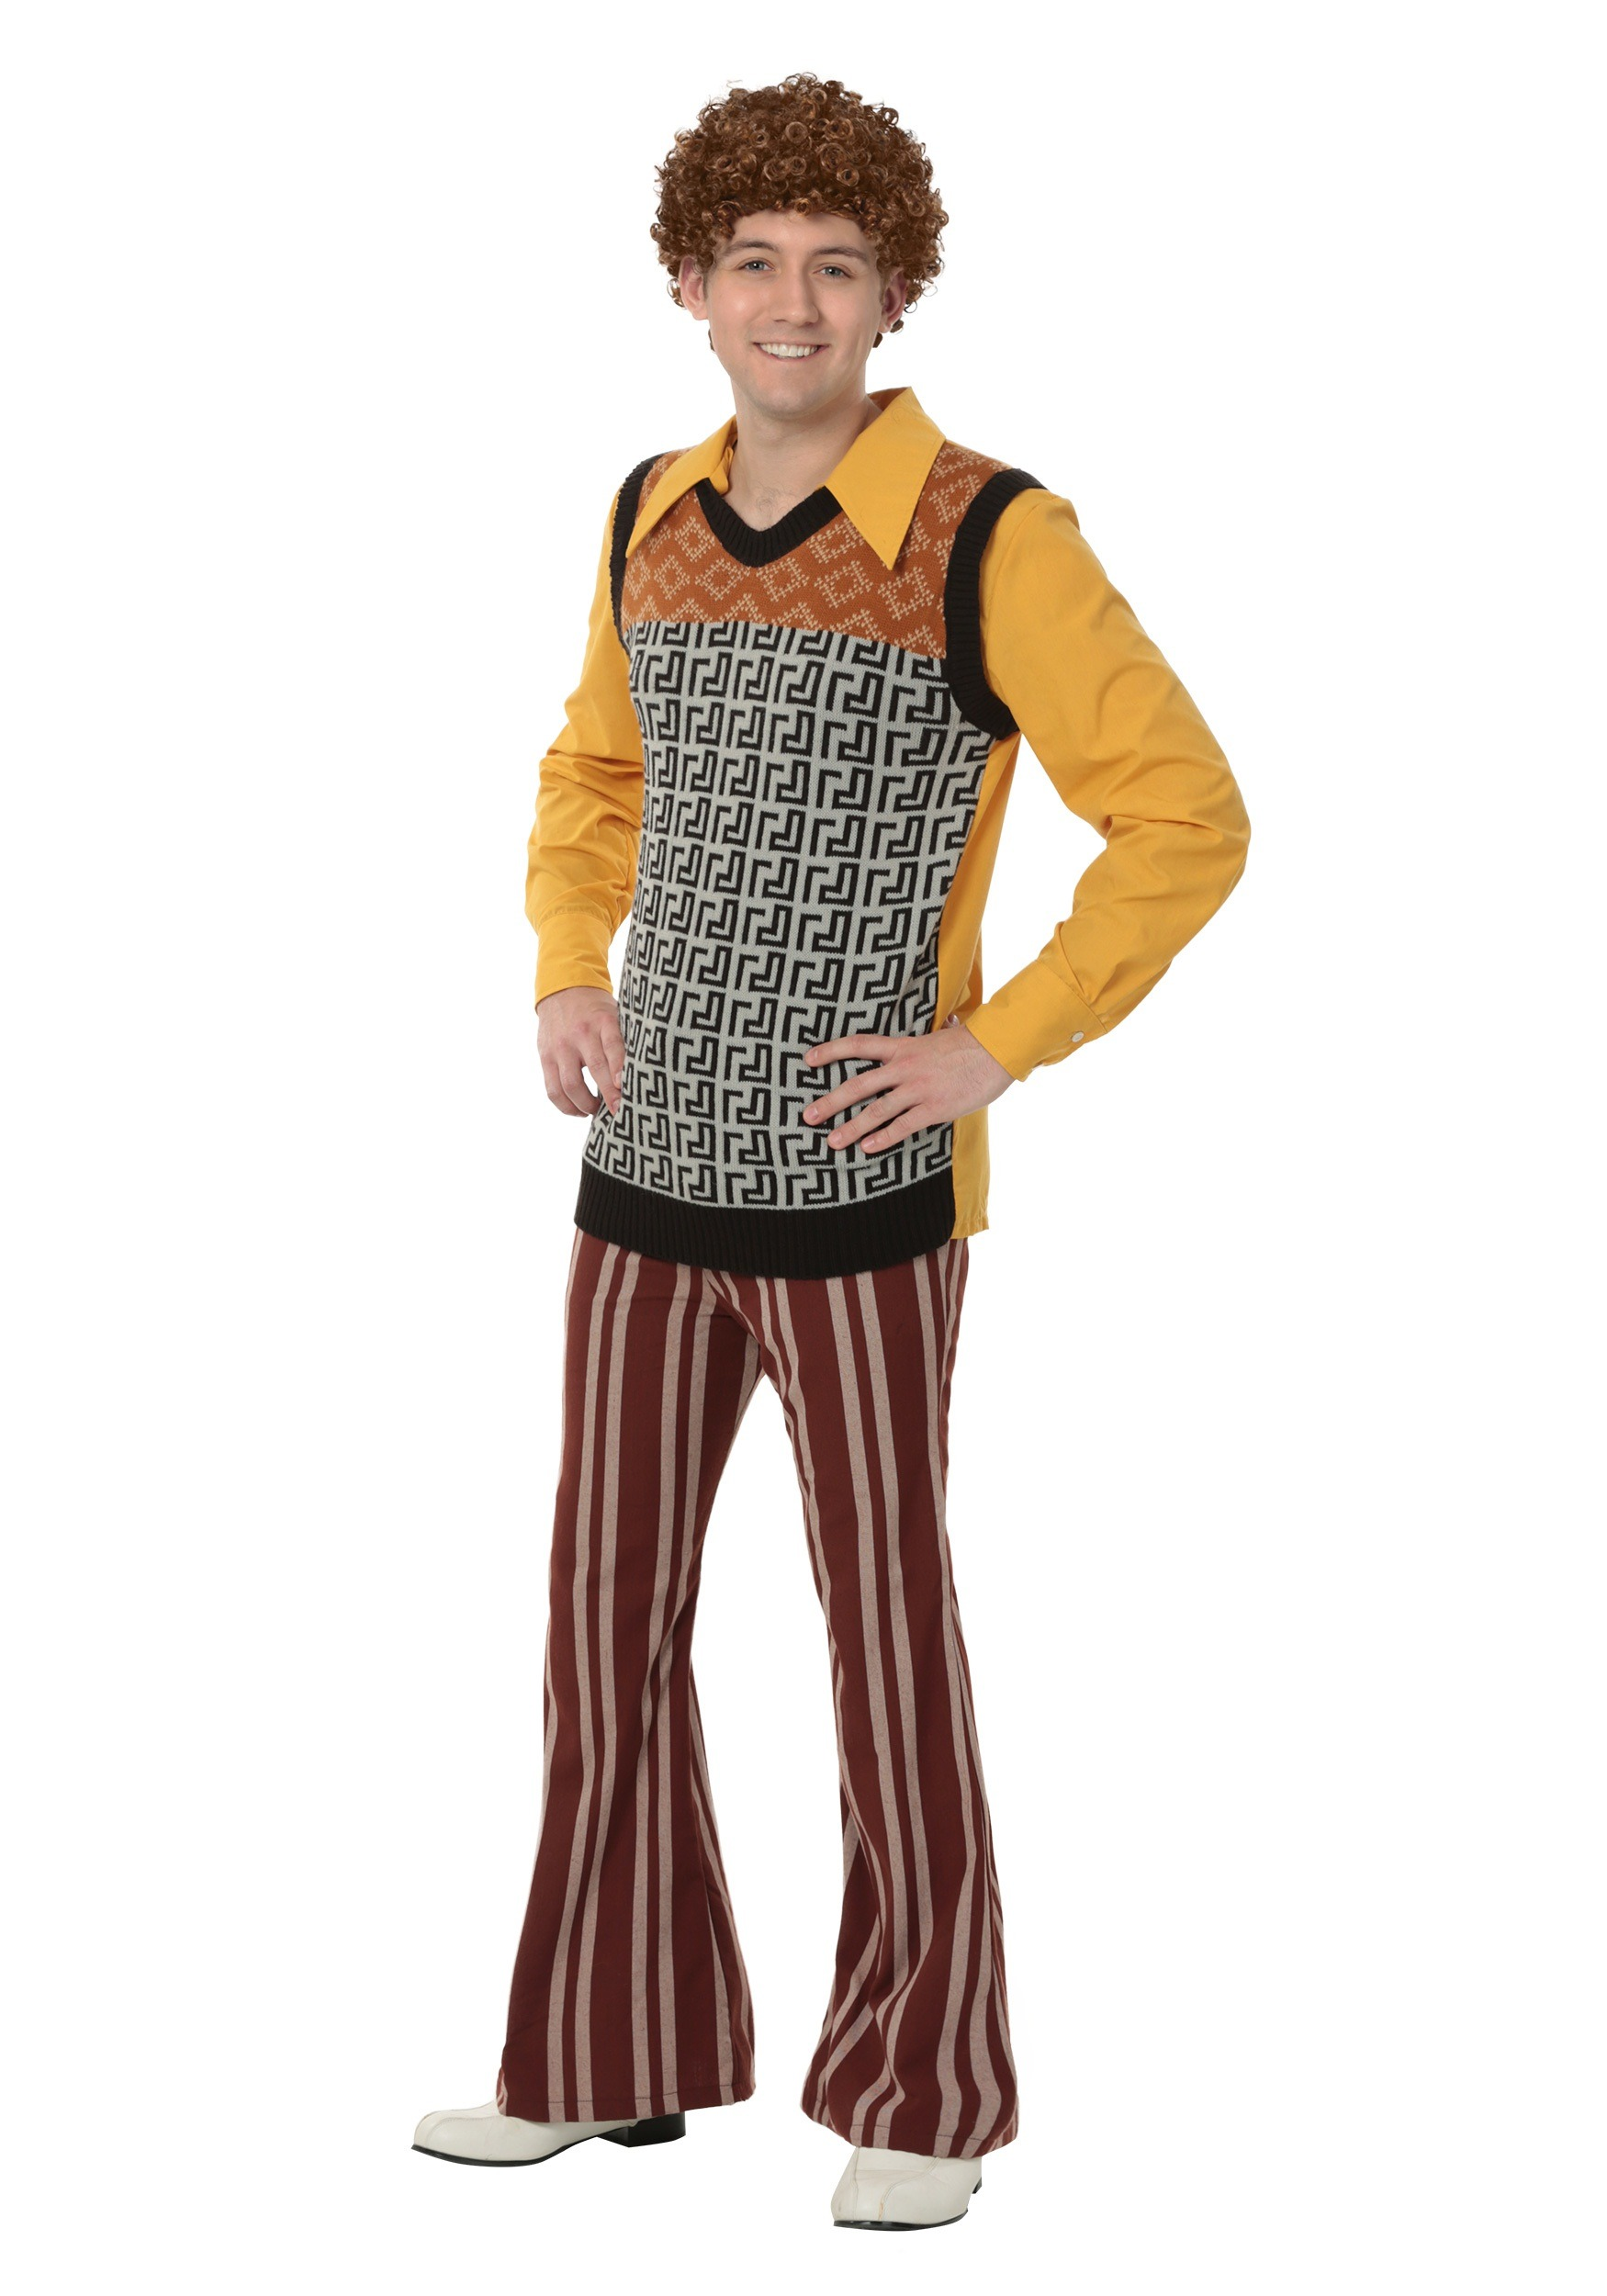 Newest and hottest Halloween costumes at LOW wholesale prices - featuring a huge.